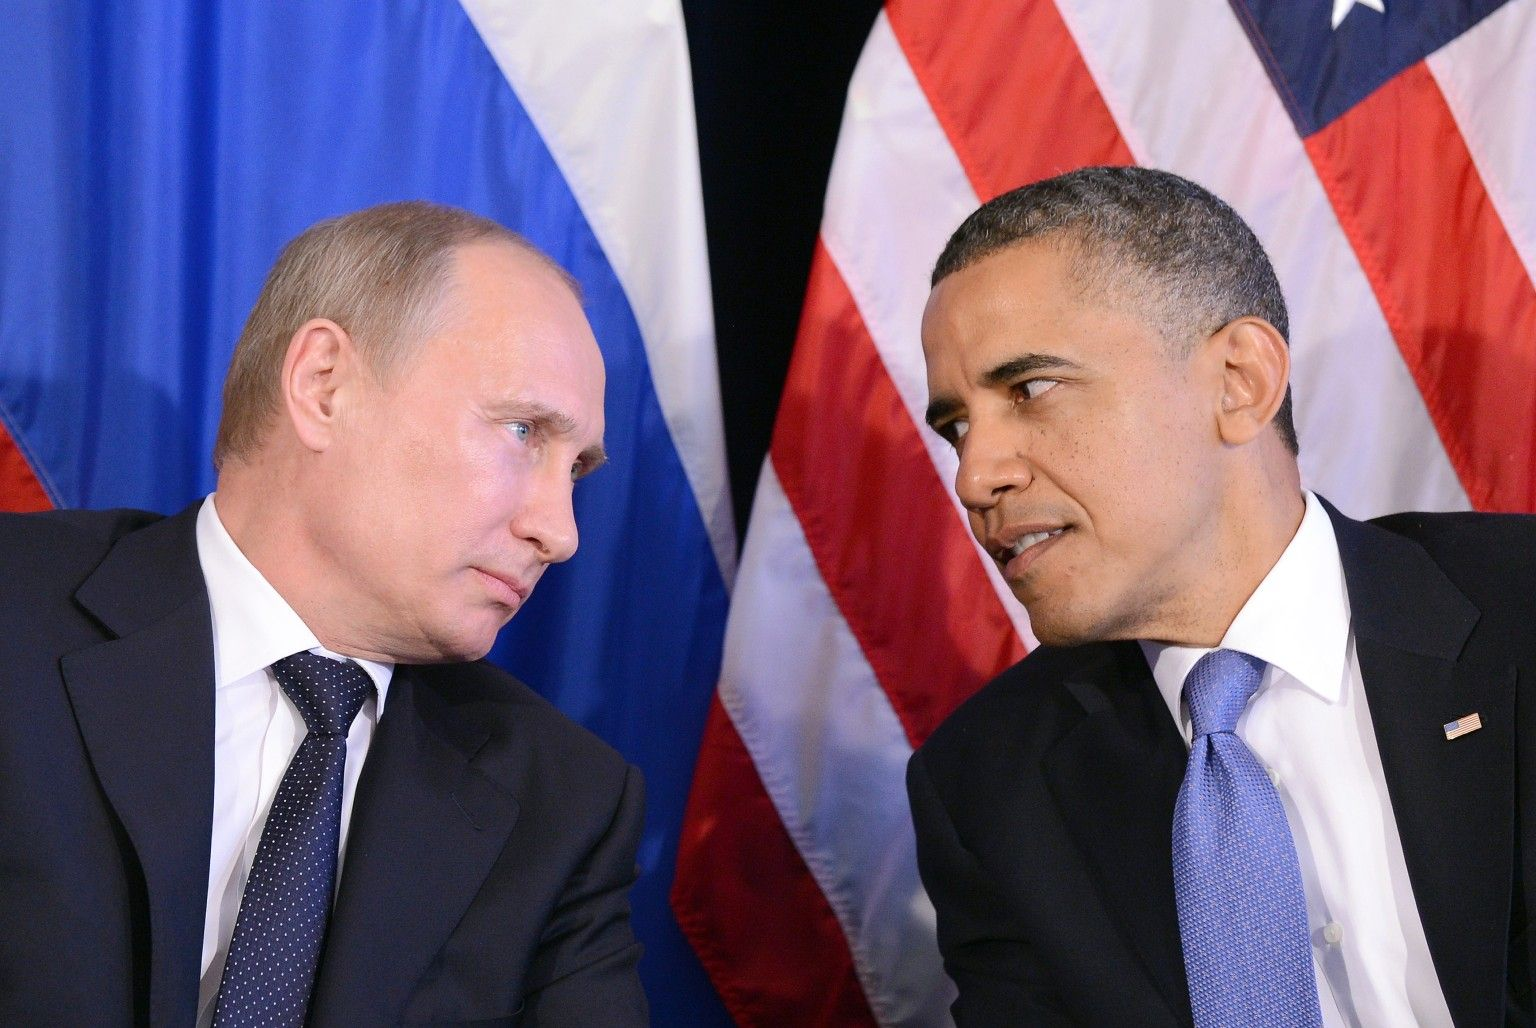 """US President Barack Obama (R) listens to Russian President Vladimir Putin after their bilateral meeting in Los Cabos, Mexico on June 18, 2012 on the sidelines of the G20 summit. Obama and President Vladimir Putin met Monday, for the first time since the Russian leader's return to the presidency, for talks overshadowed by a row over Syria. The closely watched meeting opened half-an-hour late on the sidelines of the G20 summit of developed and developing nations, as the US leader sought to preserve his """"reset"""" of ties with Moscow despite building disagreements. AFP PHOTO/Jewel Samad        (Photo credit should read JEWEL SAMAD/AFP/GettyImages)"""